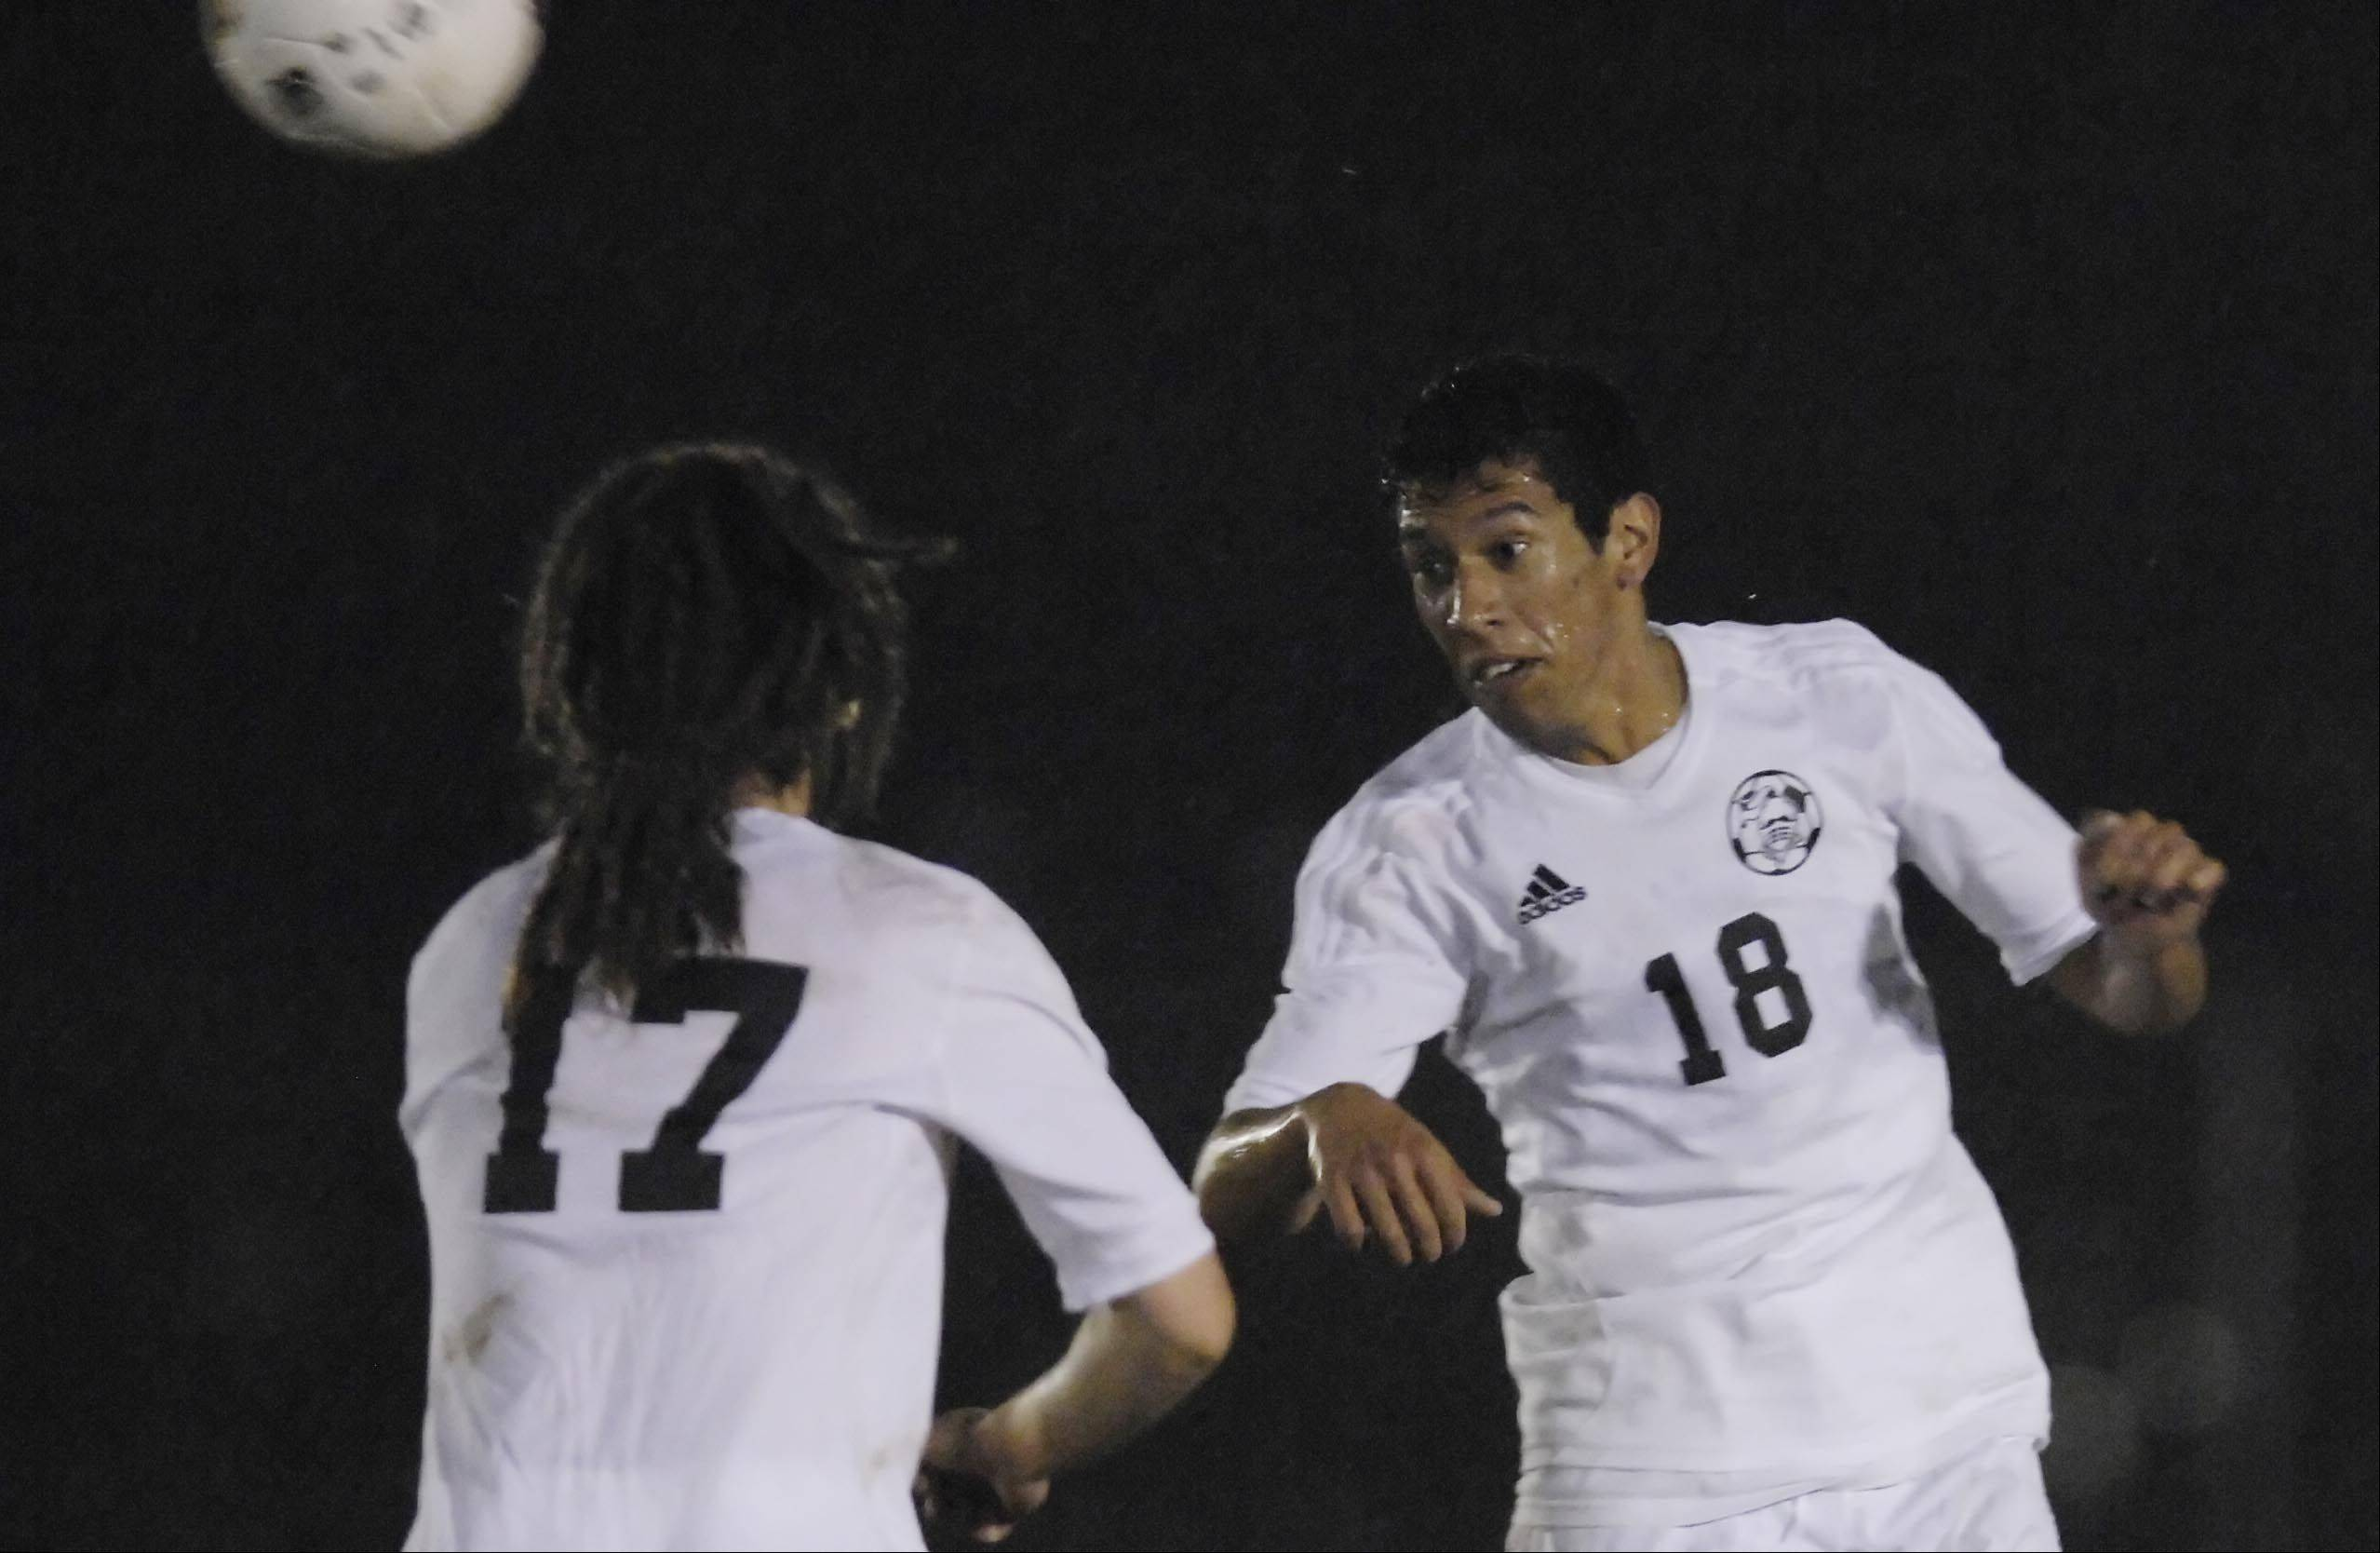 Kaneland's Diego Ochoa heads the ball as teammate Matt Vander Sande watches Wednesday in the Burlington regional playoff game against IMSA.